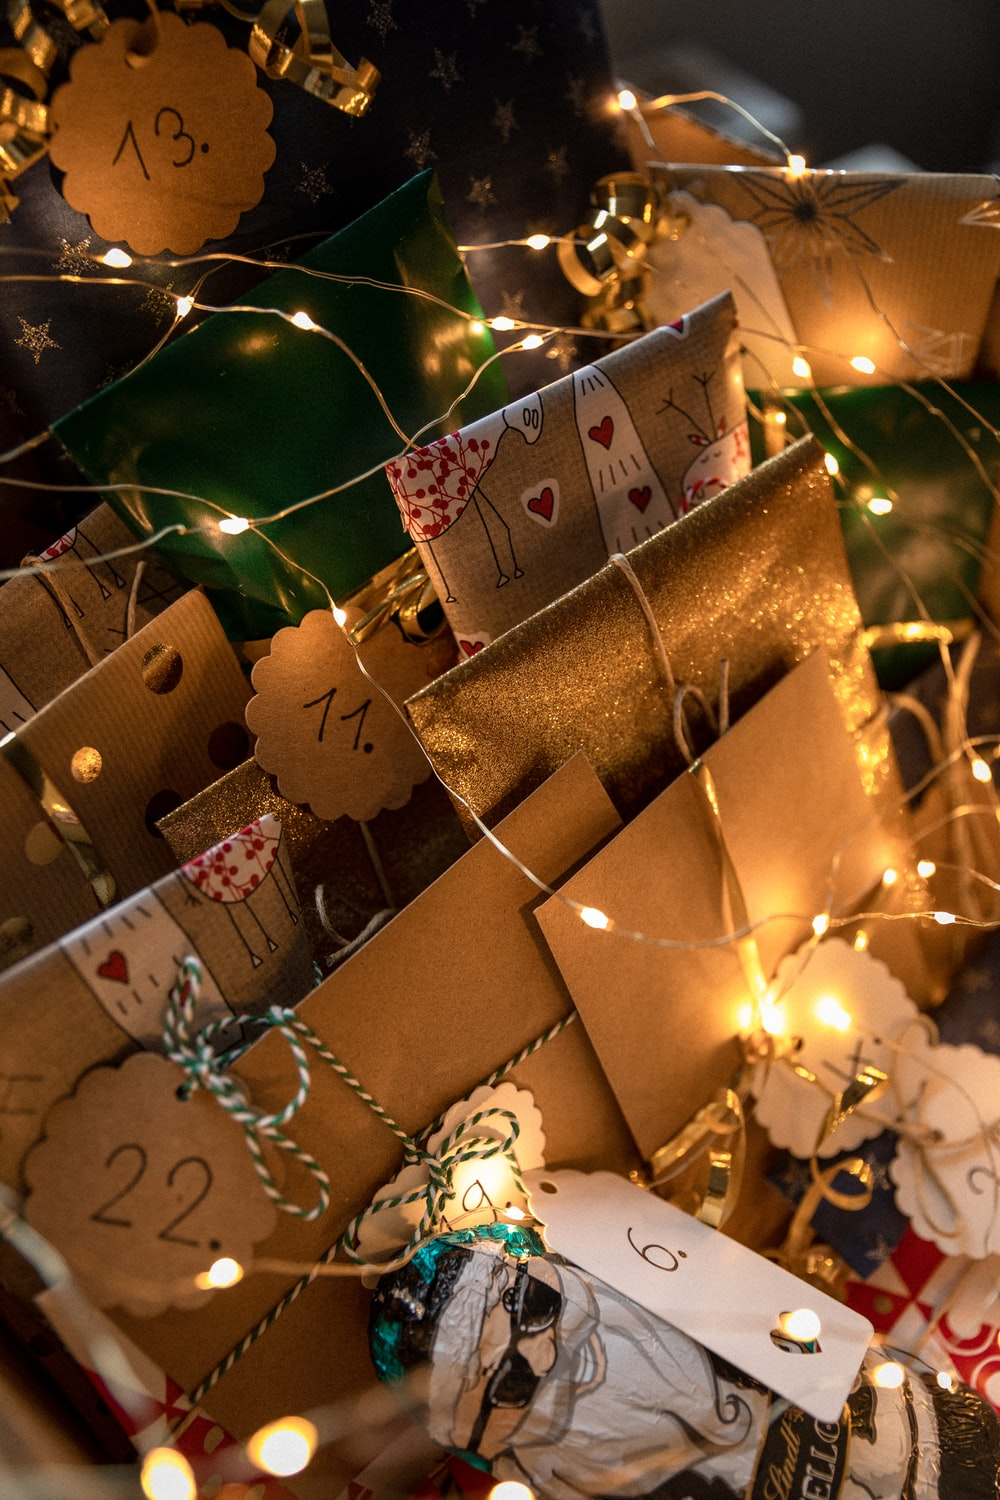 brown gift boxes with white string lights